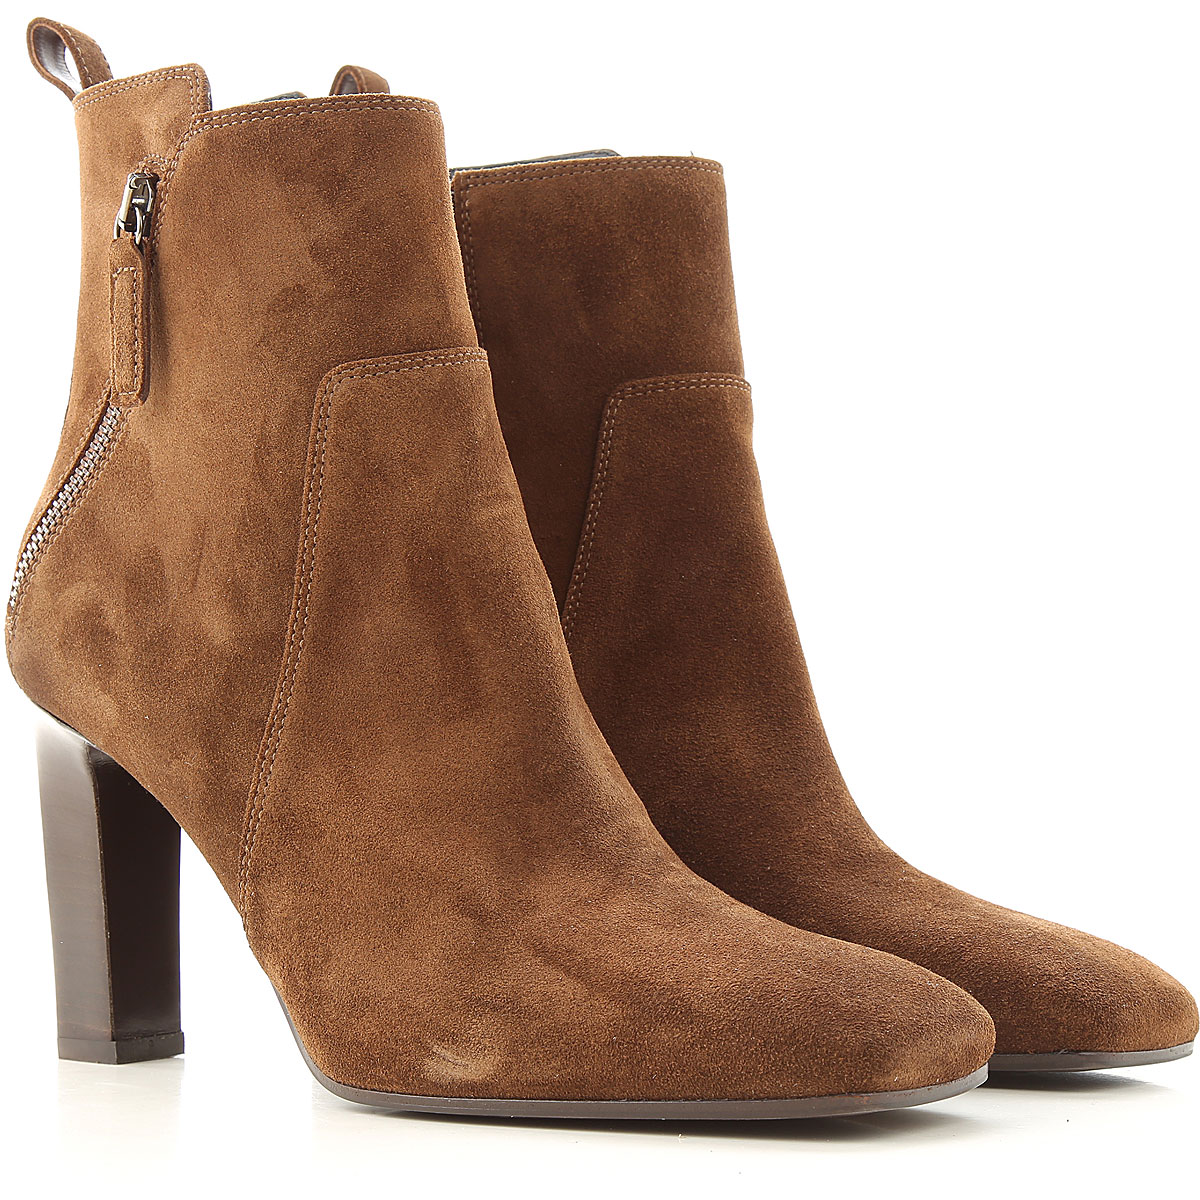 Lella Baldi Boots for Women, Booties On Sale, Brown, Suede leather, 2019, 6 7 8